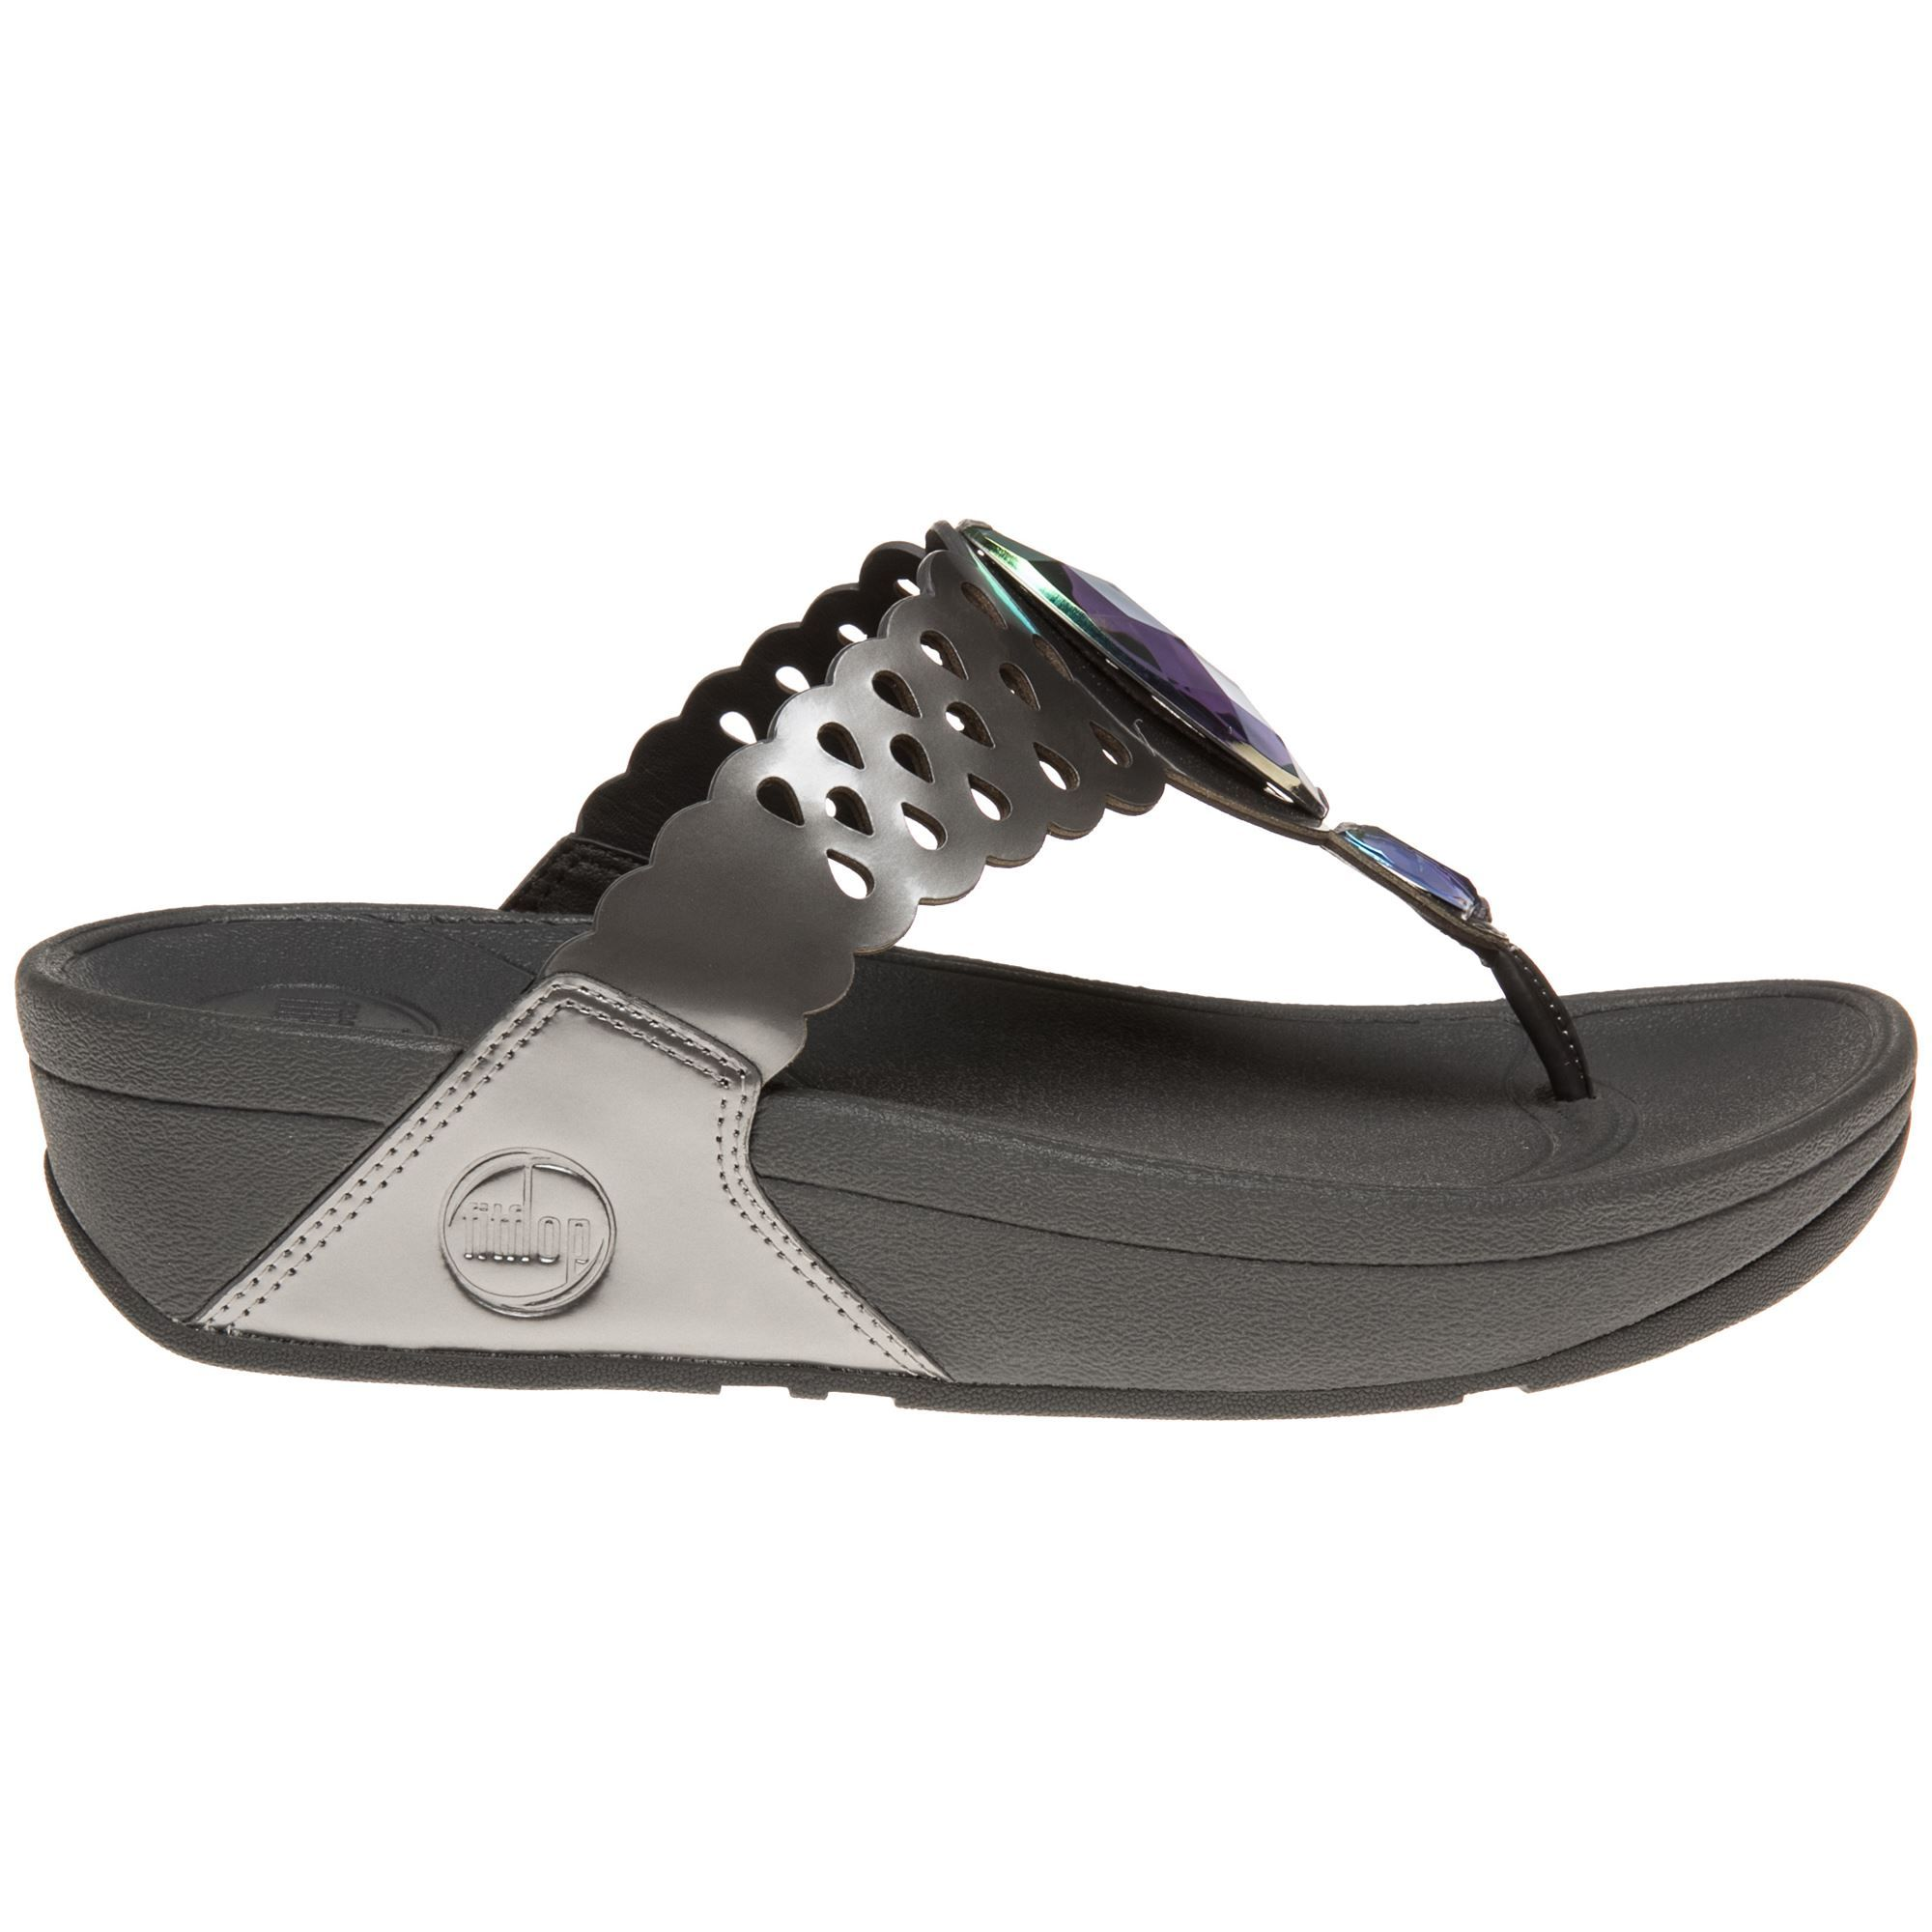 reputable site eea15 6d954 FitFlop Bijoo Sandals £49.99 | Just Dropped | Fitflop, Love ...